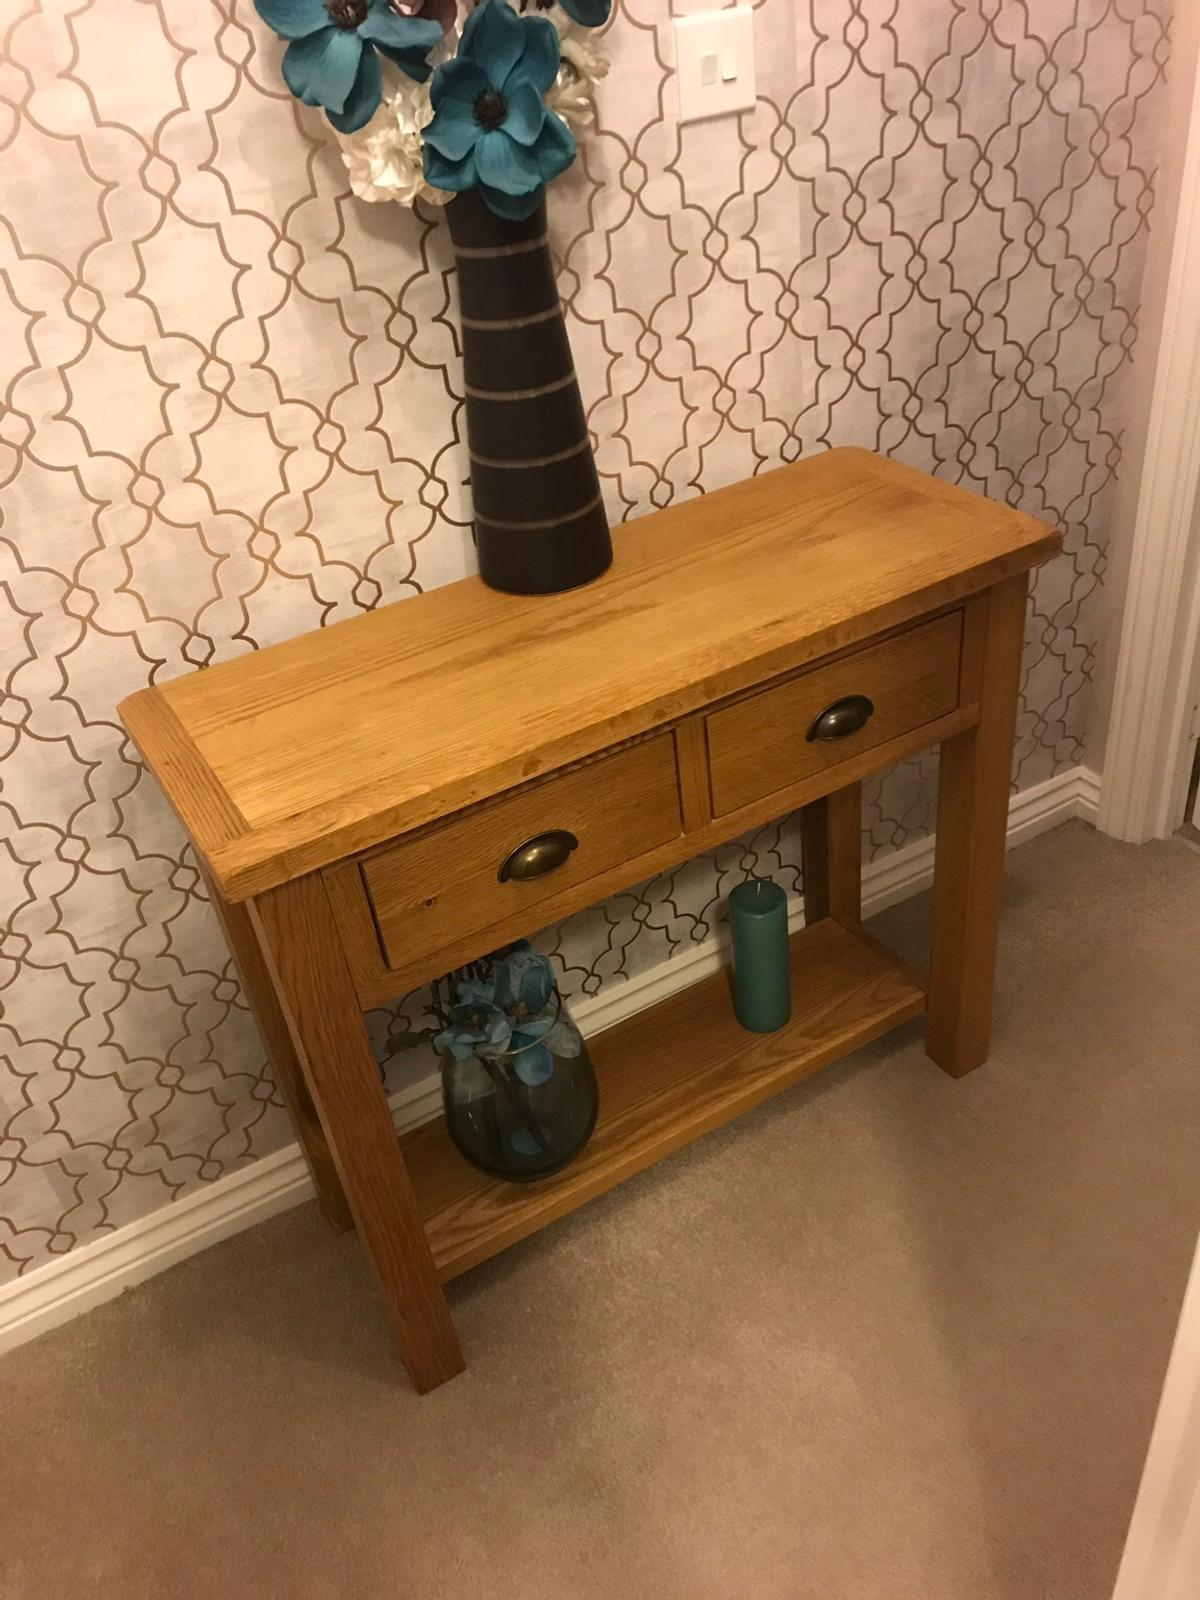 Wiltshire Oak Console Table In Dy1, Wiltshire Oak Console Table With Storage Baskets